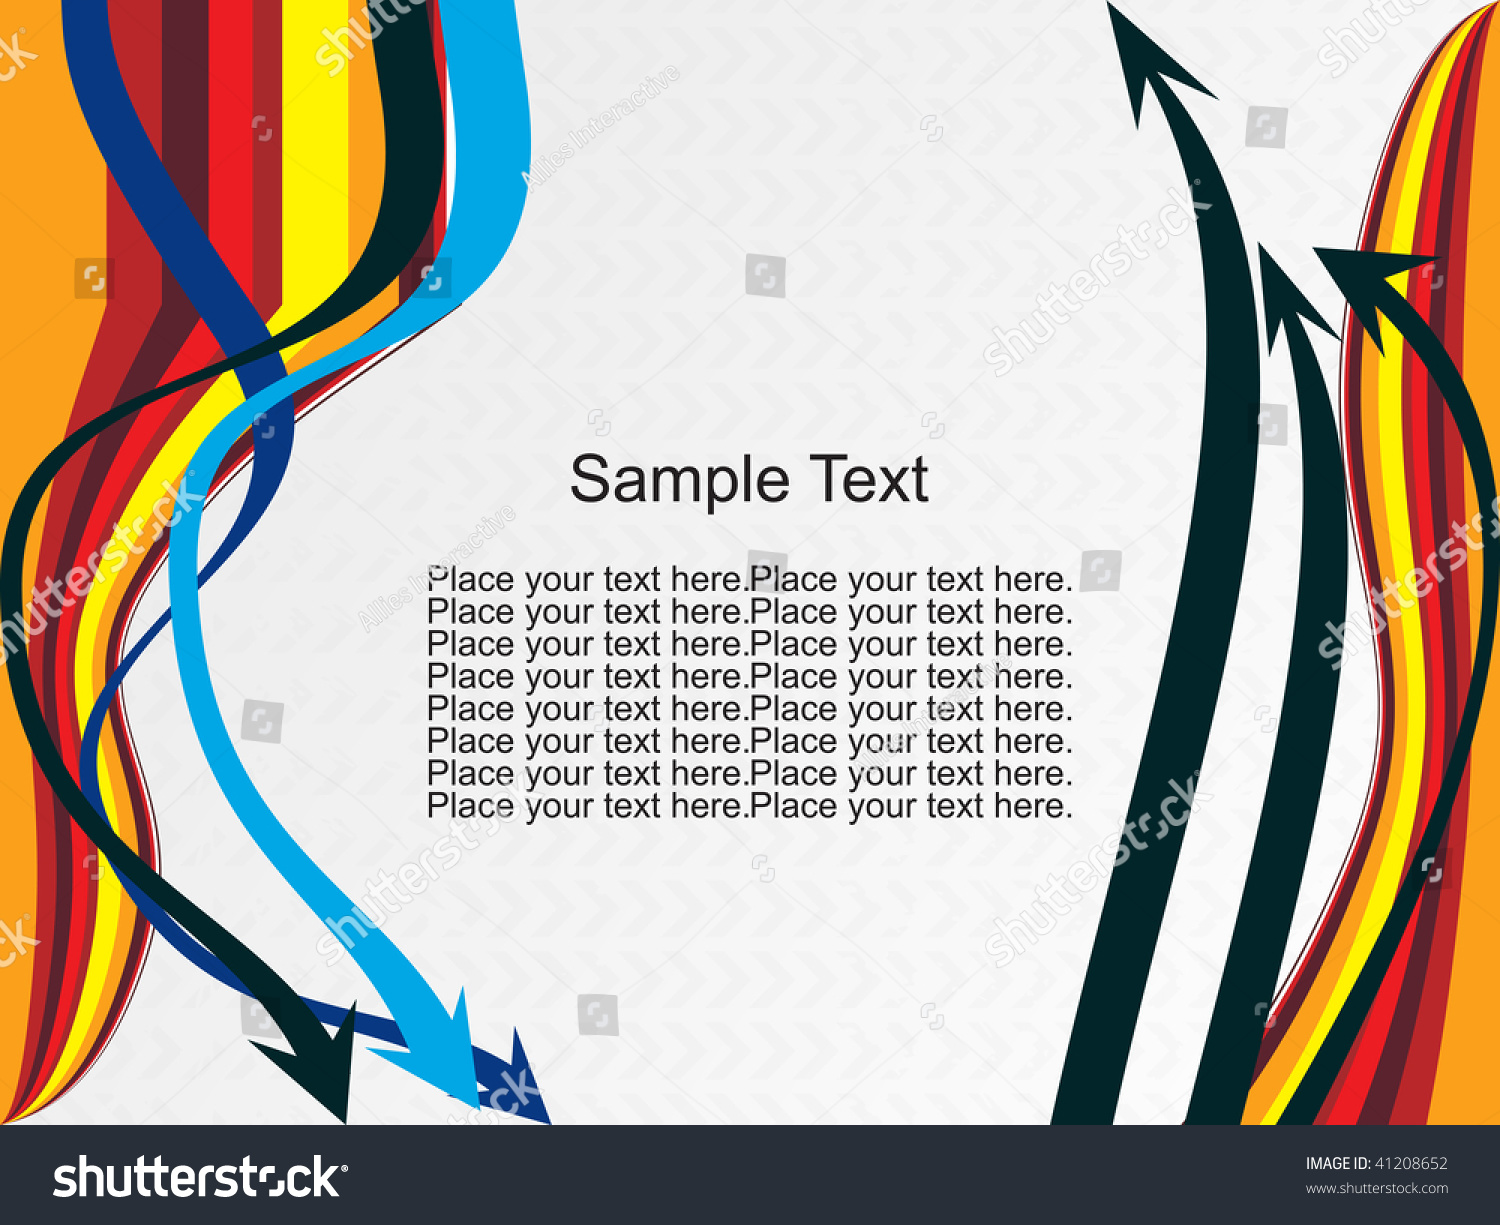 Color Abstract Vector Background Text Frame Stock Vector: Colorful Stripes Abstract Background Sample Text Stock